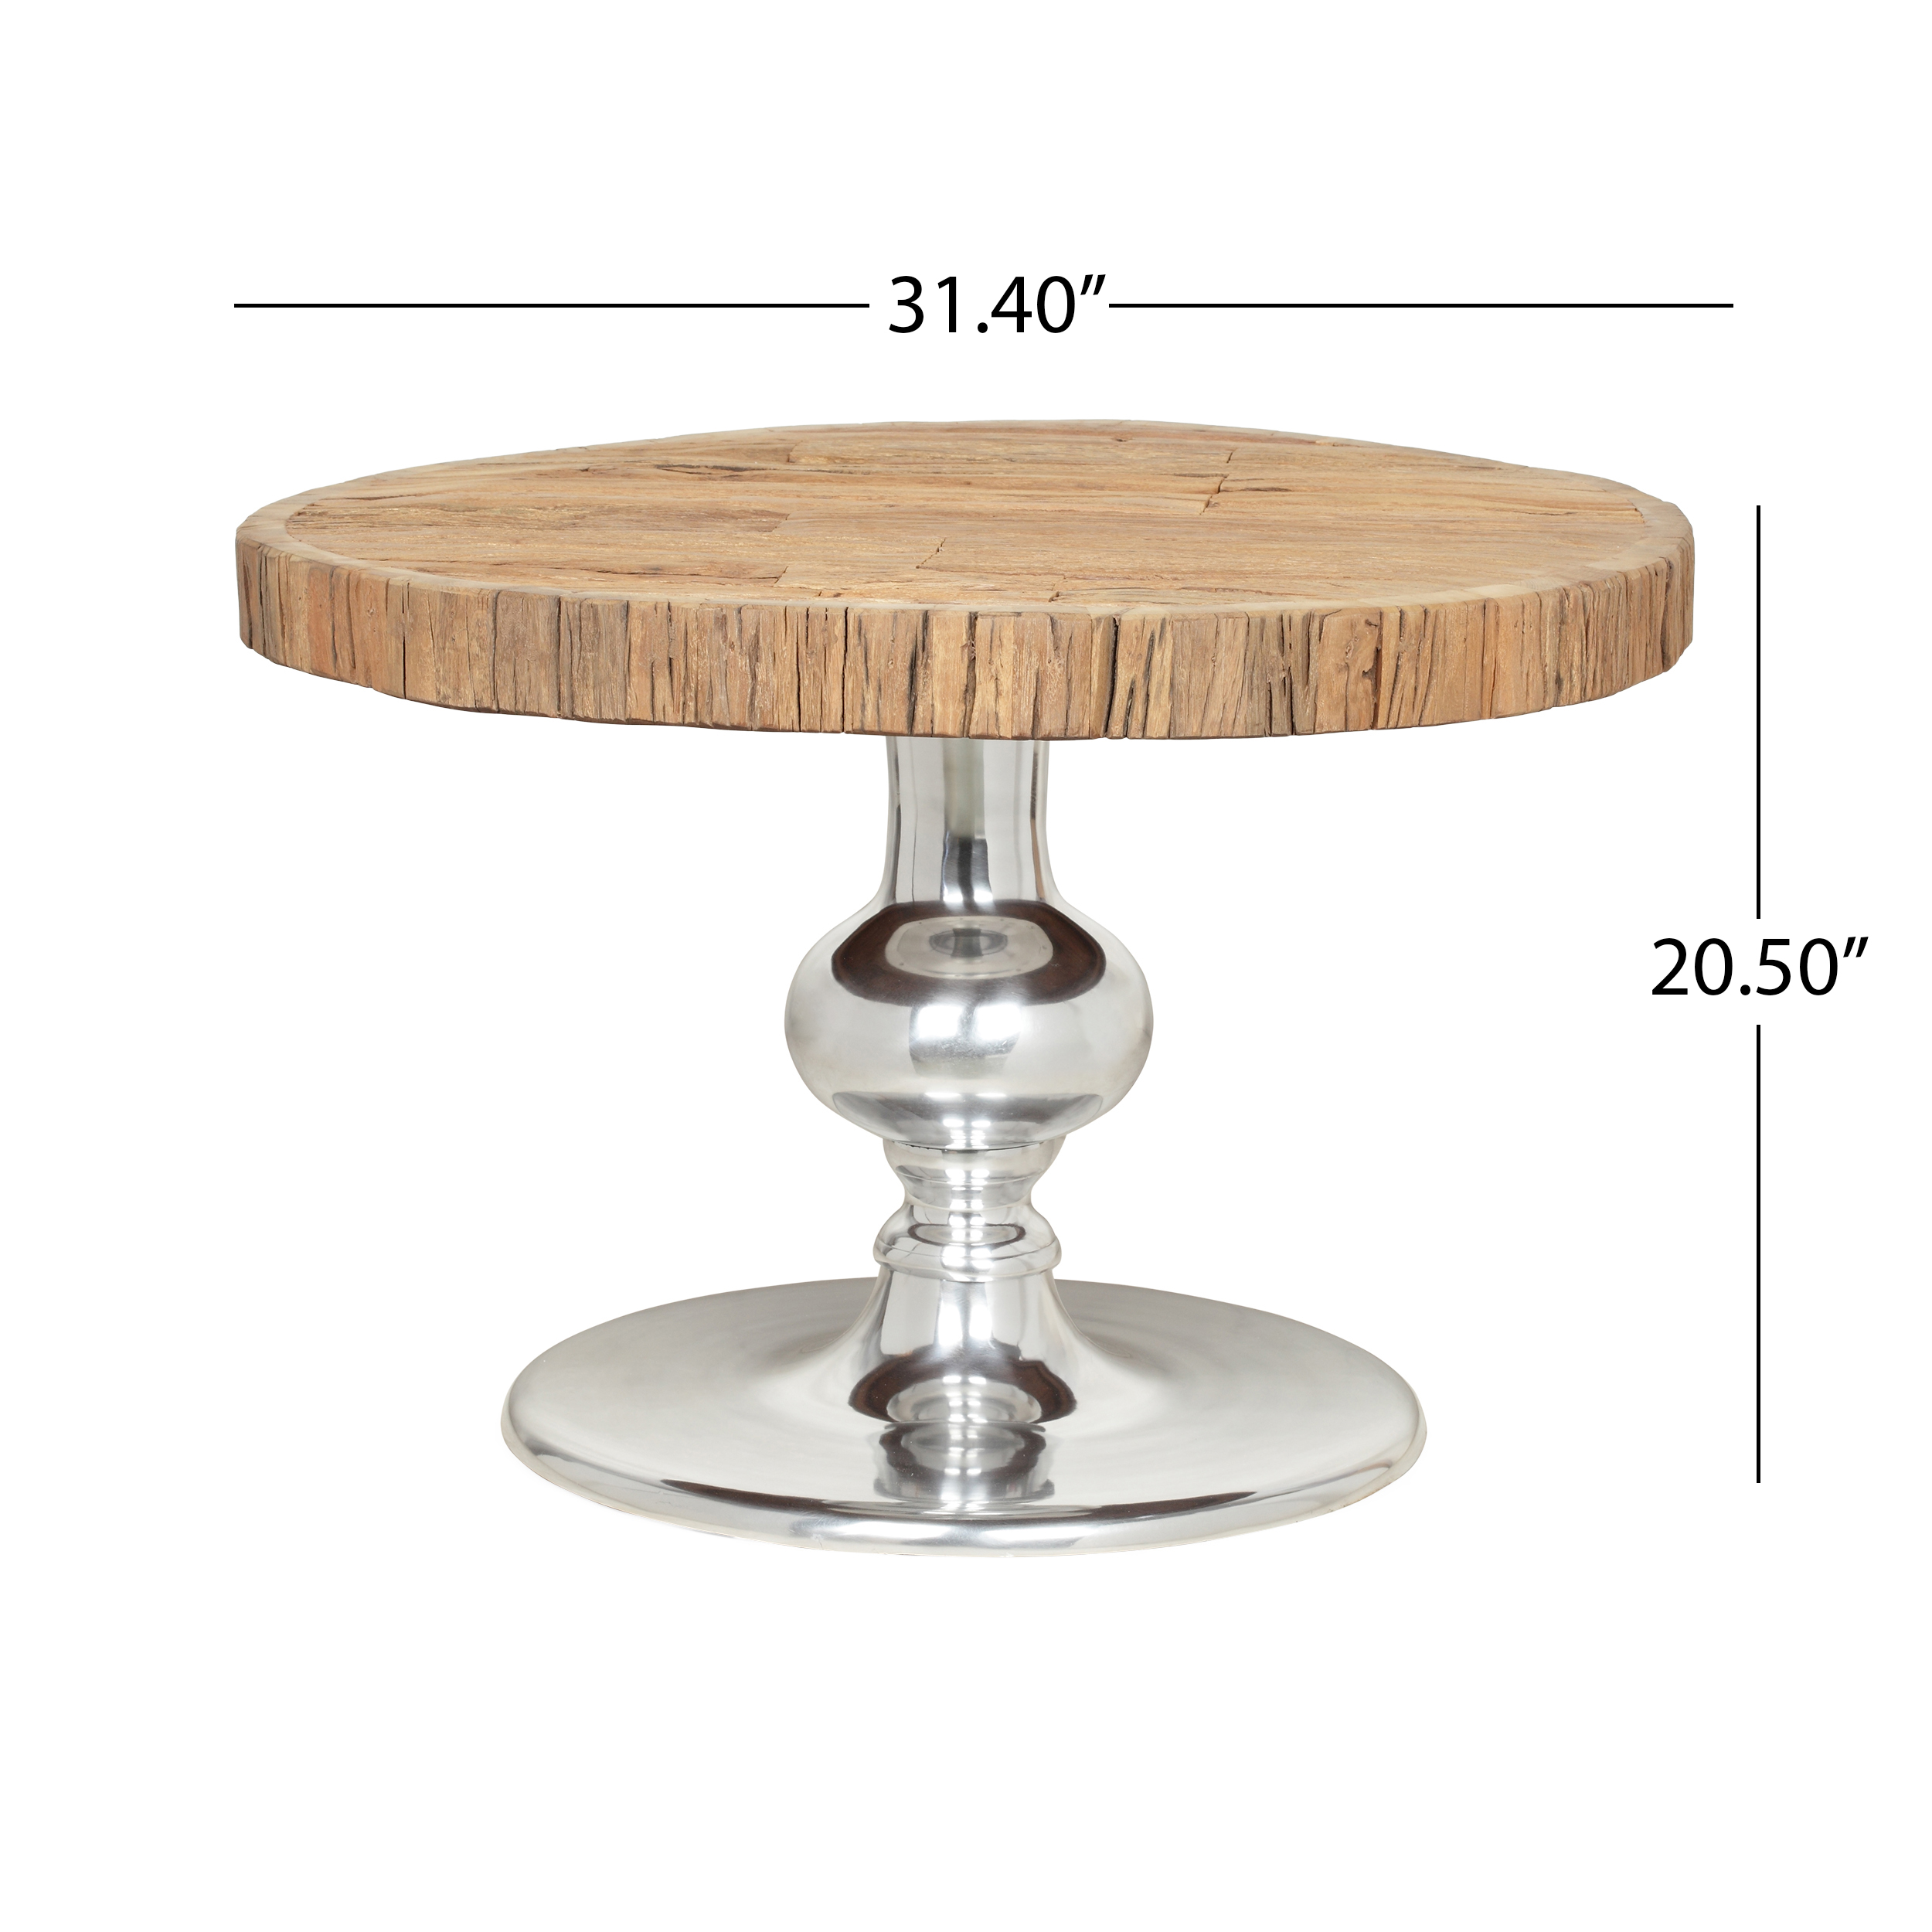 oxton handcrafted rustic glam coffee table with raw wood tabletop natural and shiny silver